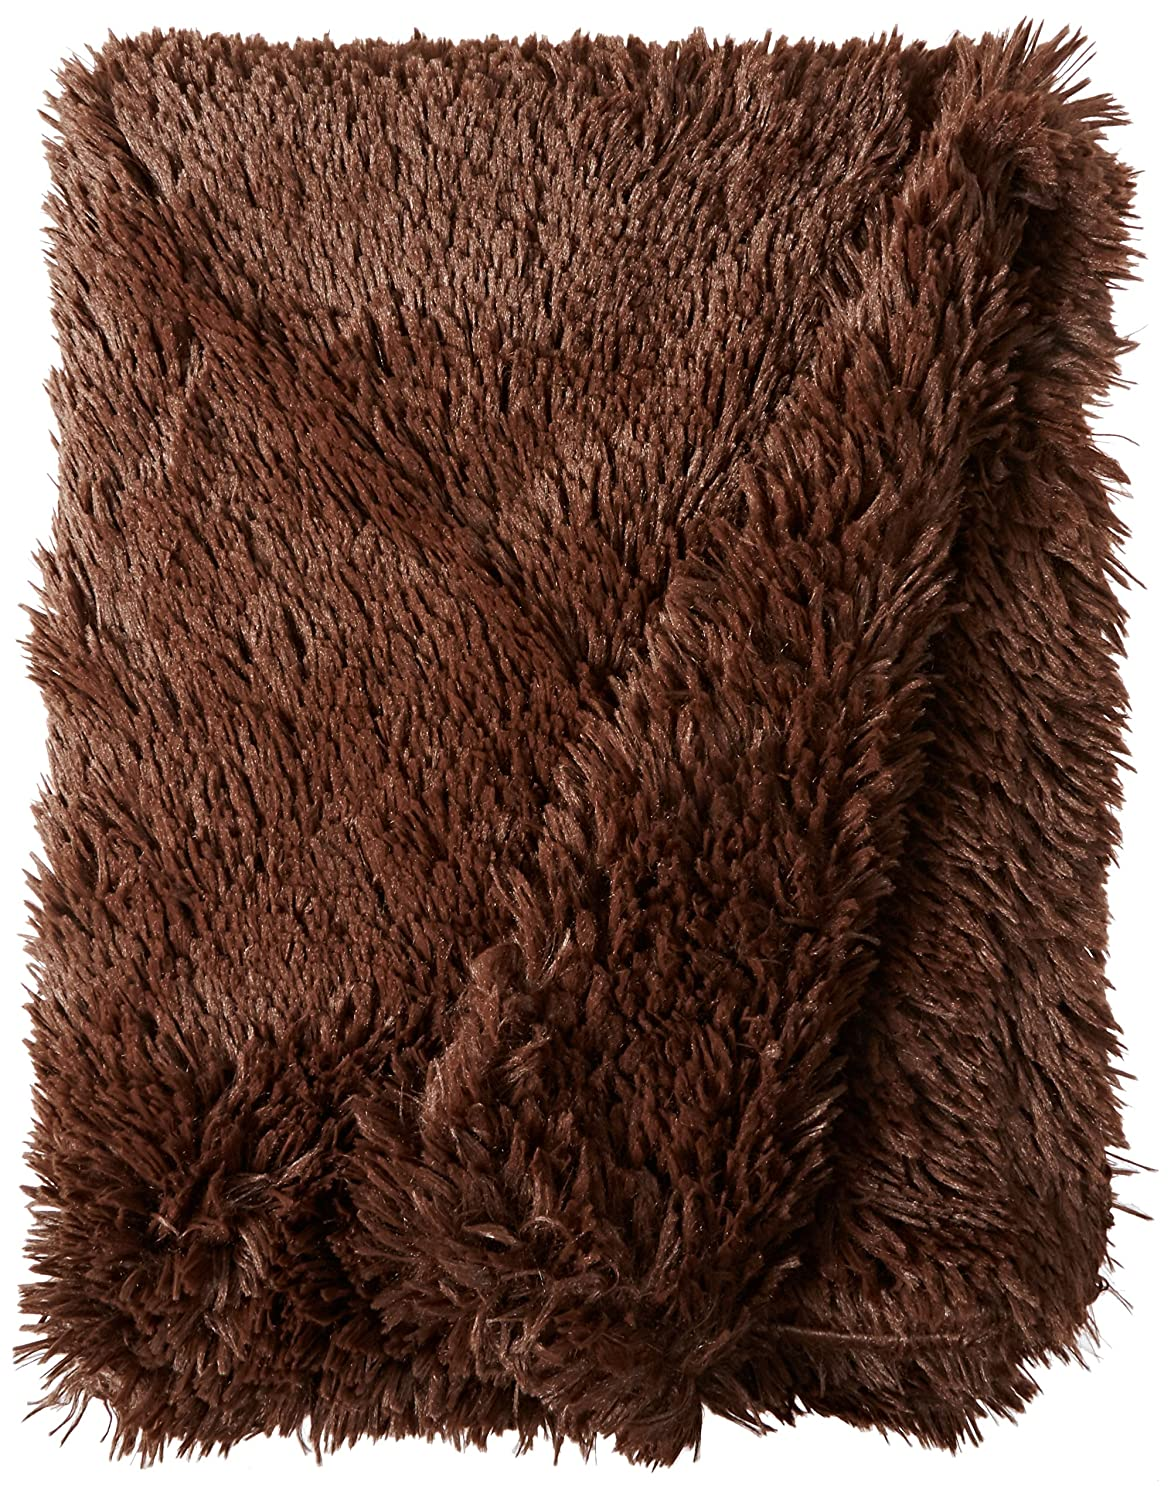 durable service BESSIE AND BARNIE Pet Blanket, Medium, Grizzly Bear/Grizzly Bear without Ruffle